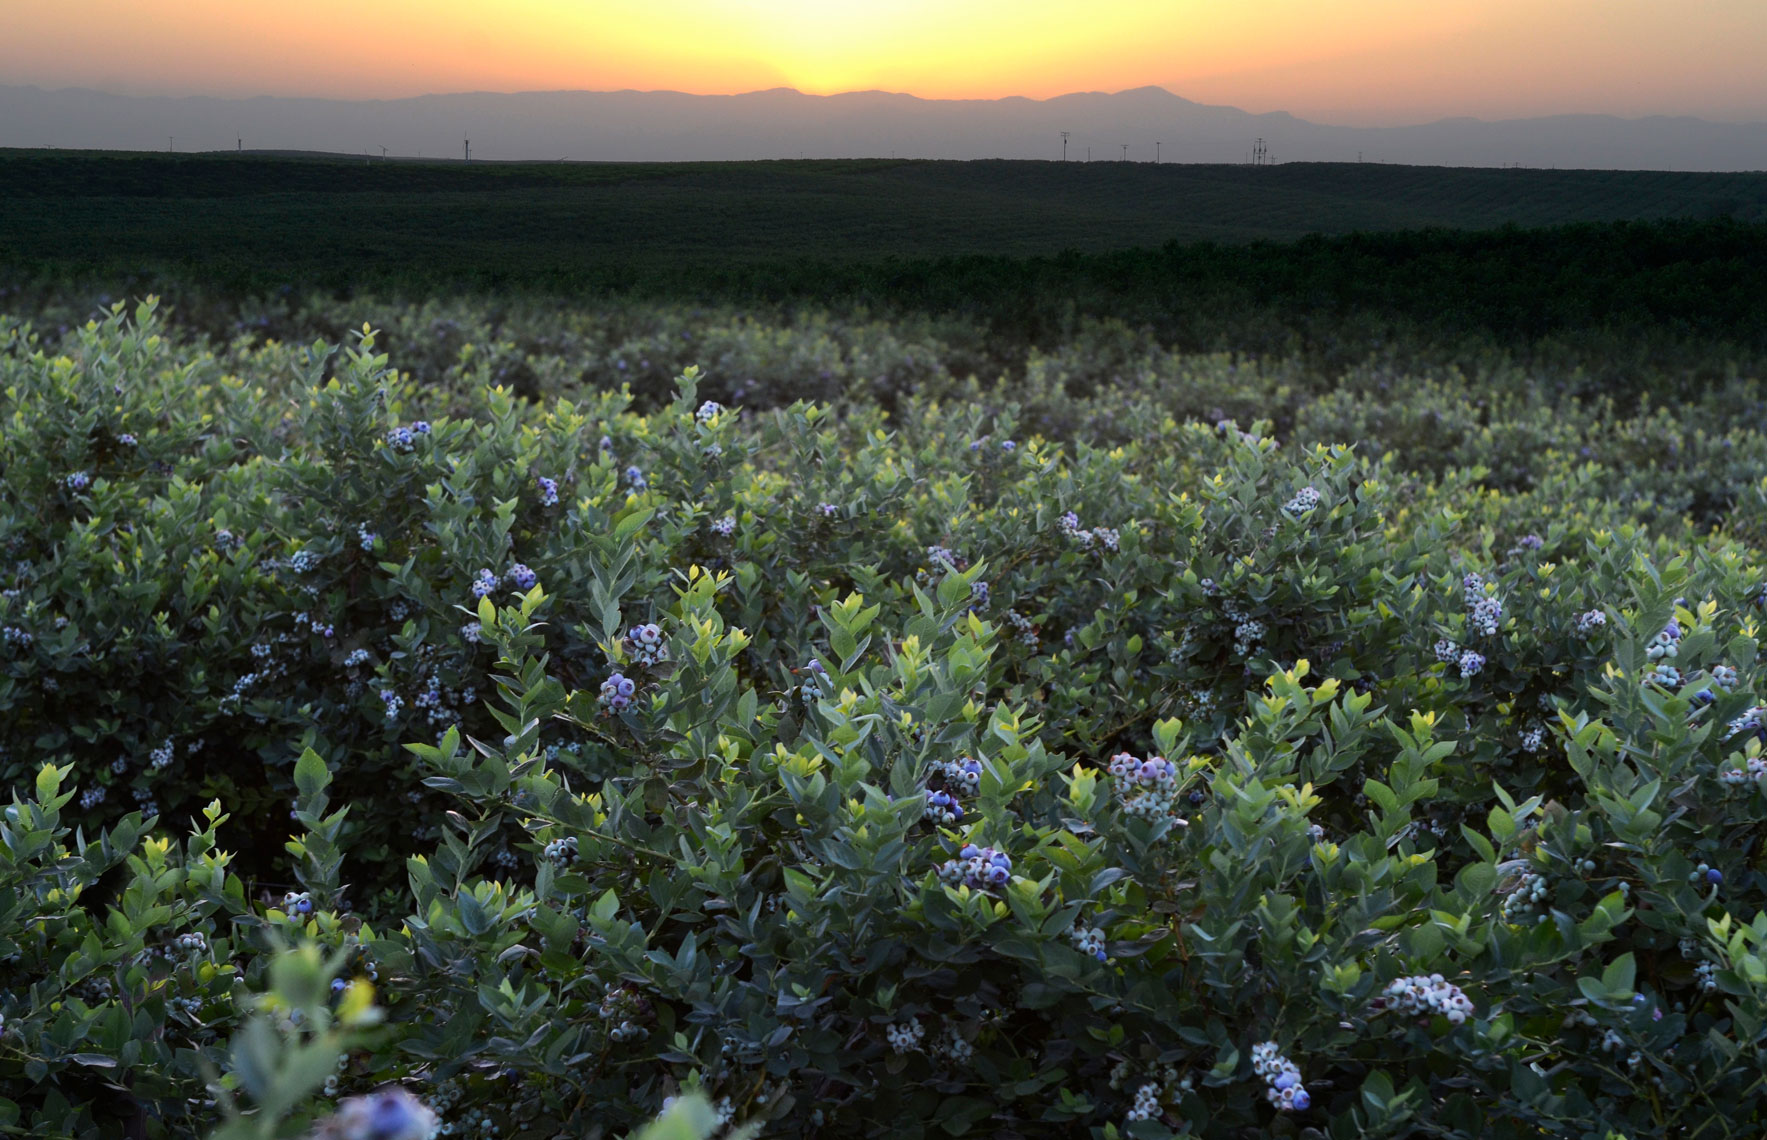 Blueberry-orchard-at-sunset-in-Delano-California